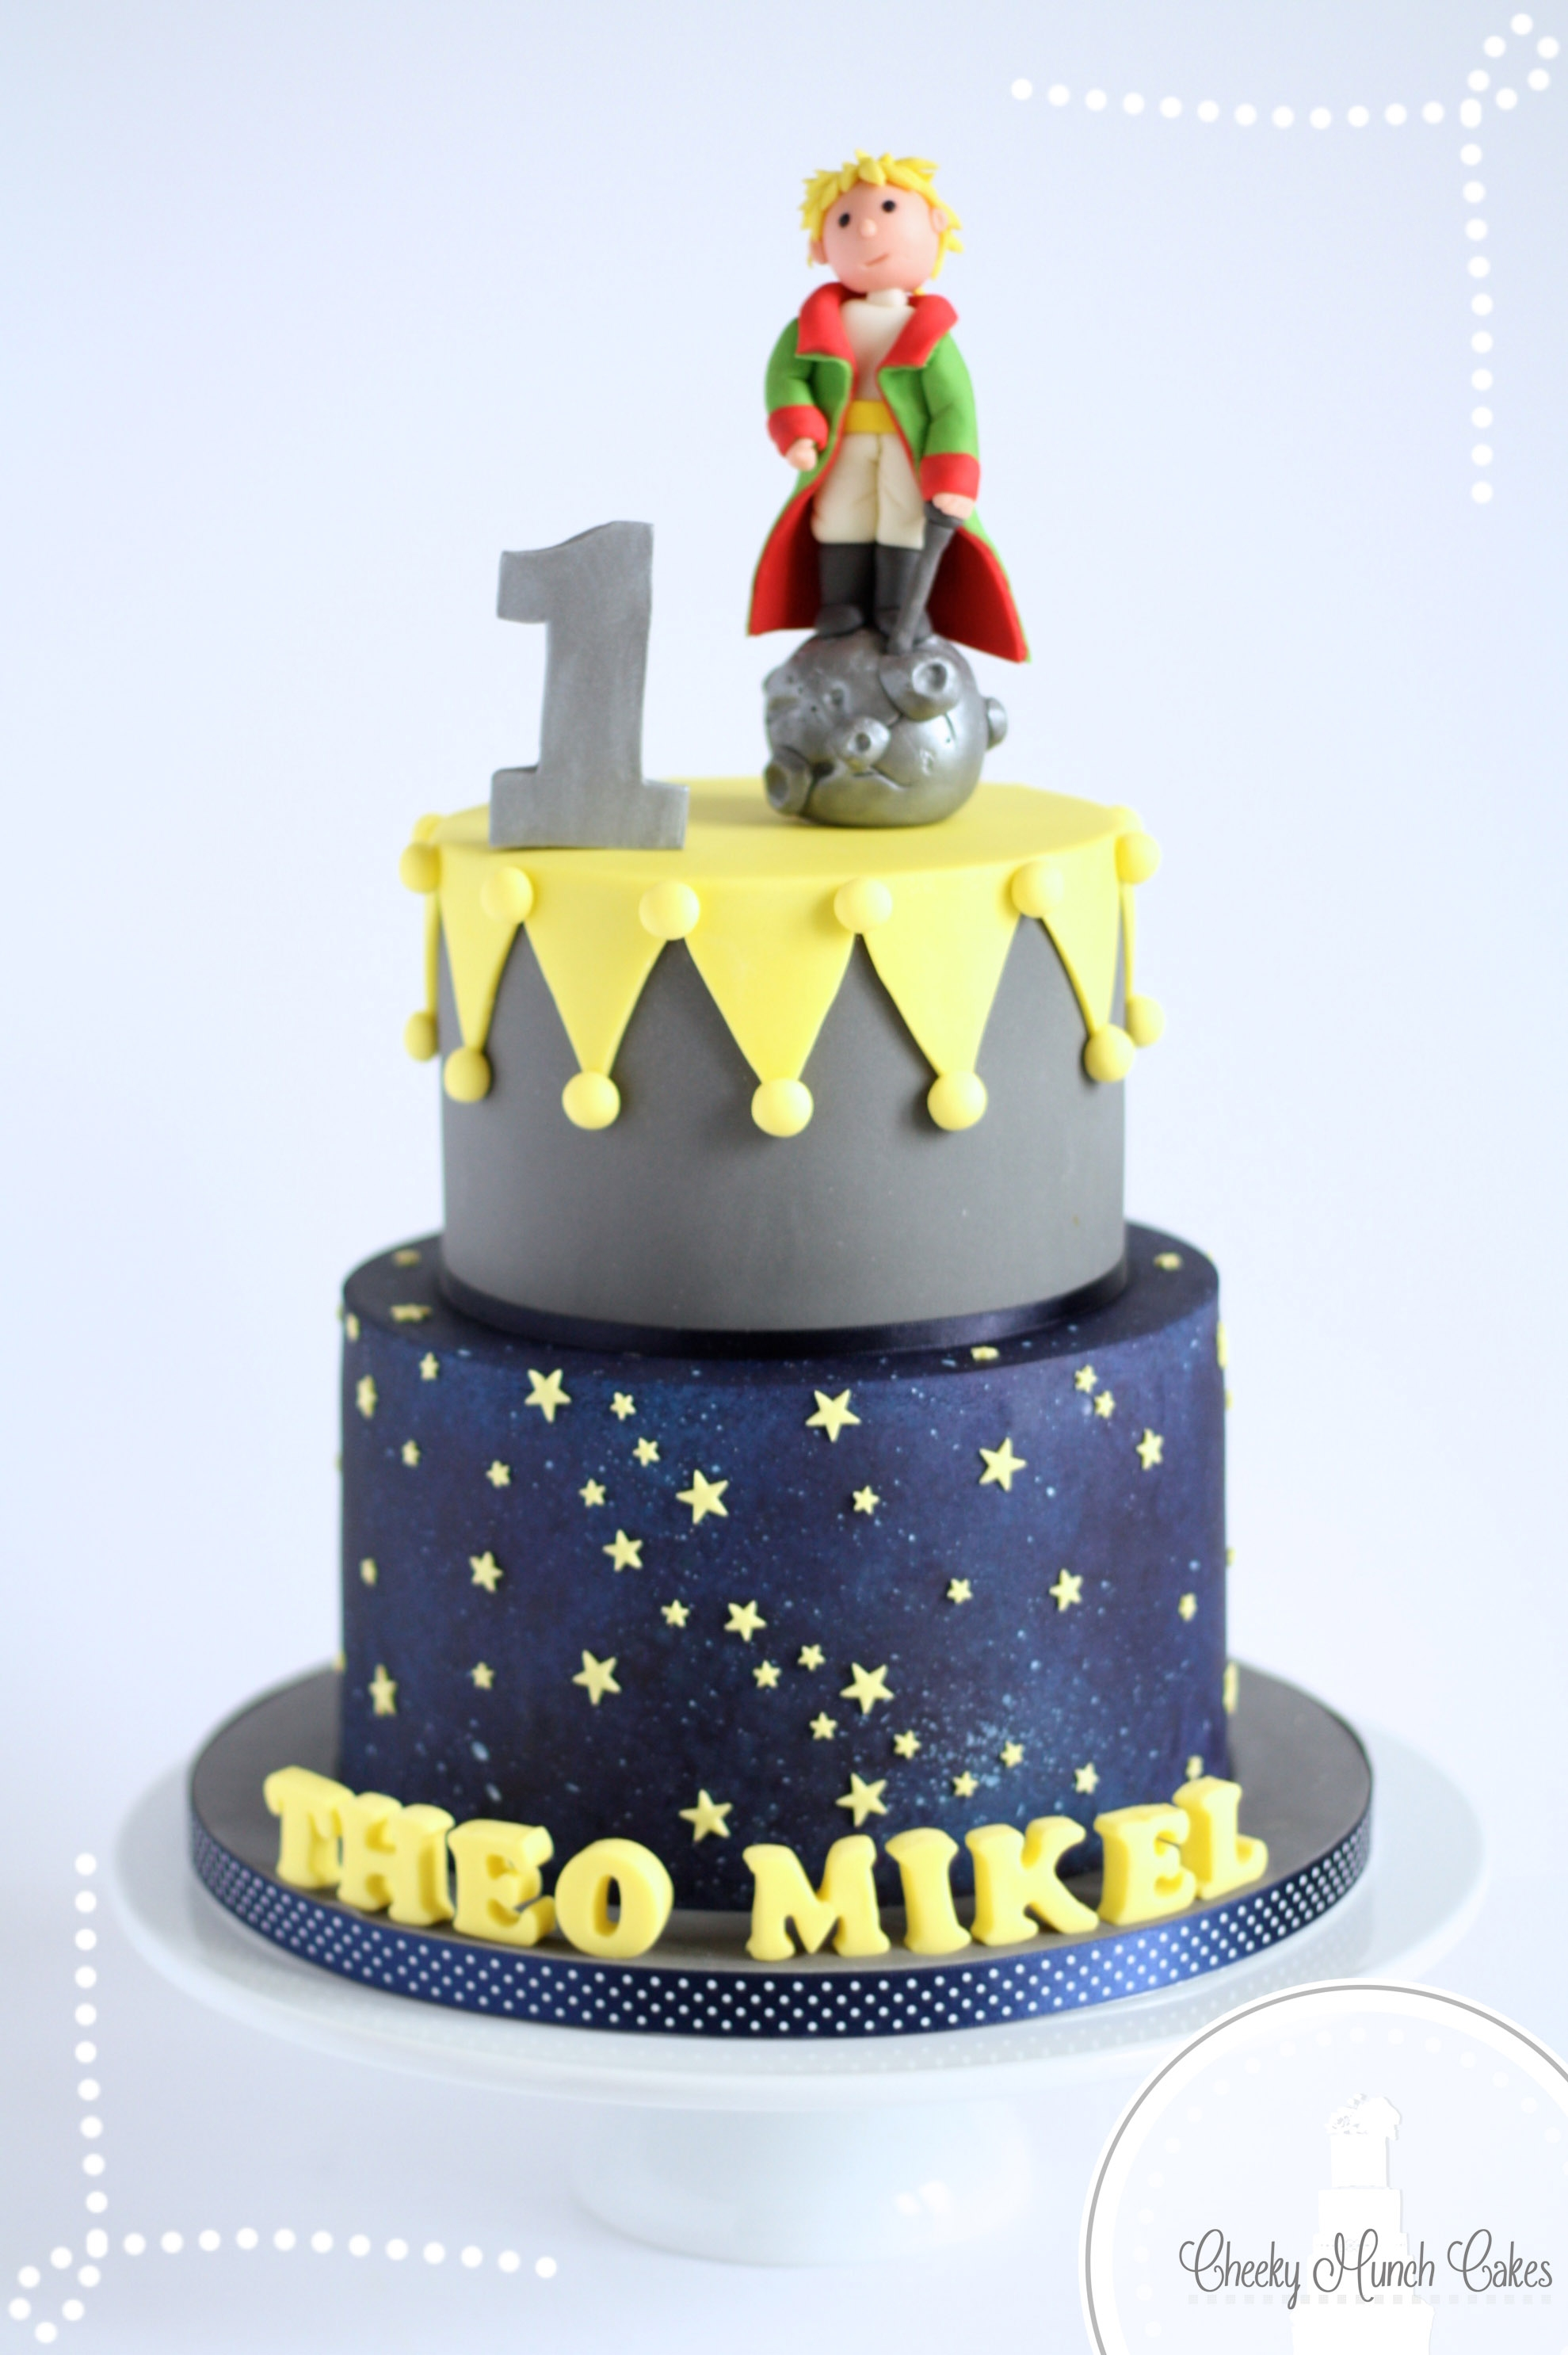 The Little Prince Cake Cakecentral Com